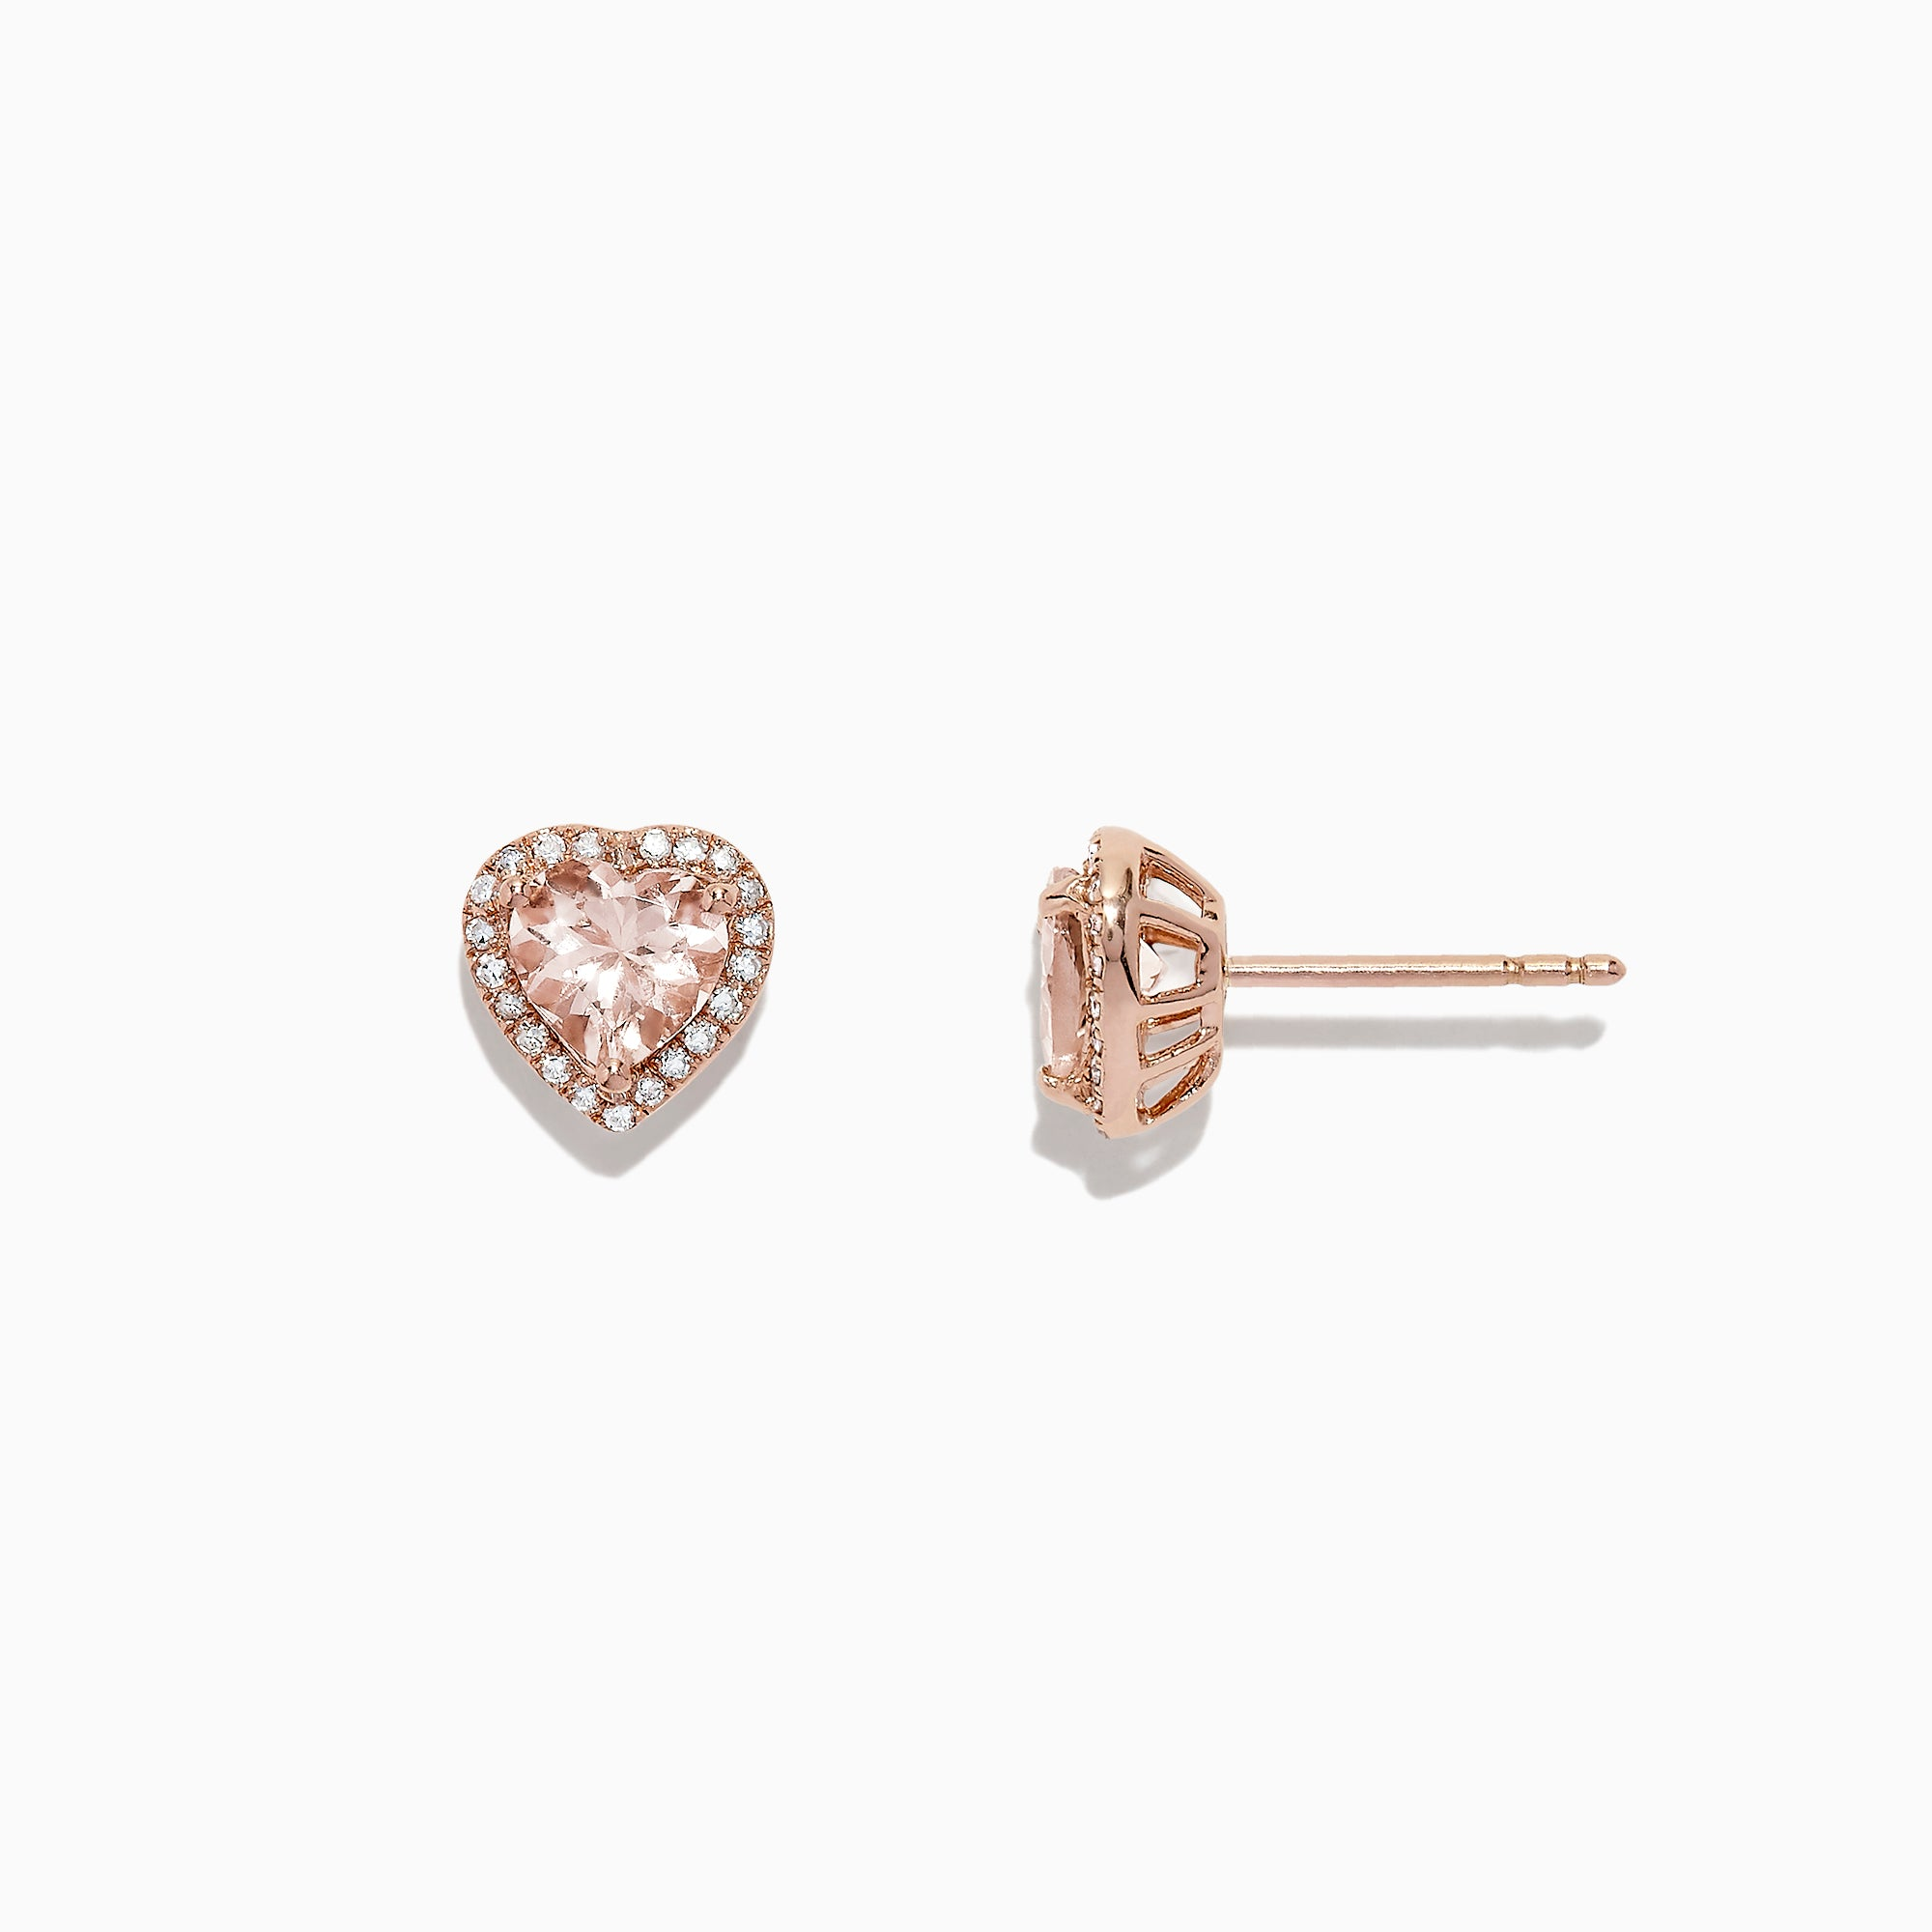 Effy Blush 14K Rose Gold Morganite and Diamond Heart Earrings, 1.87 TCW